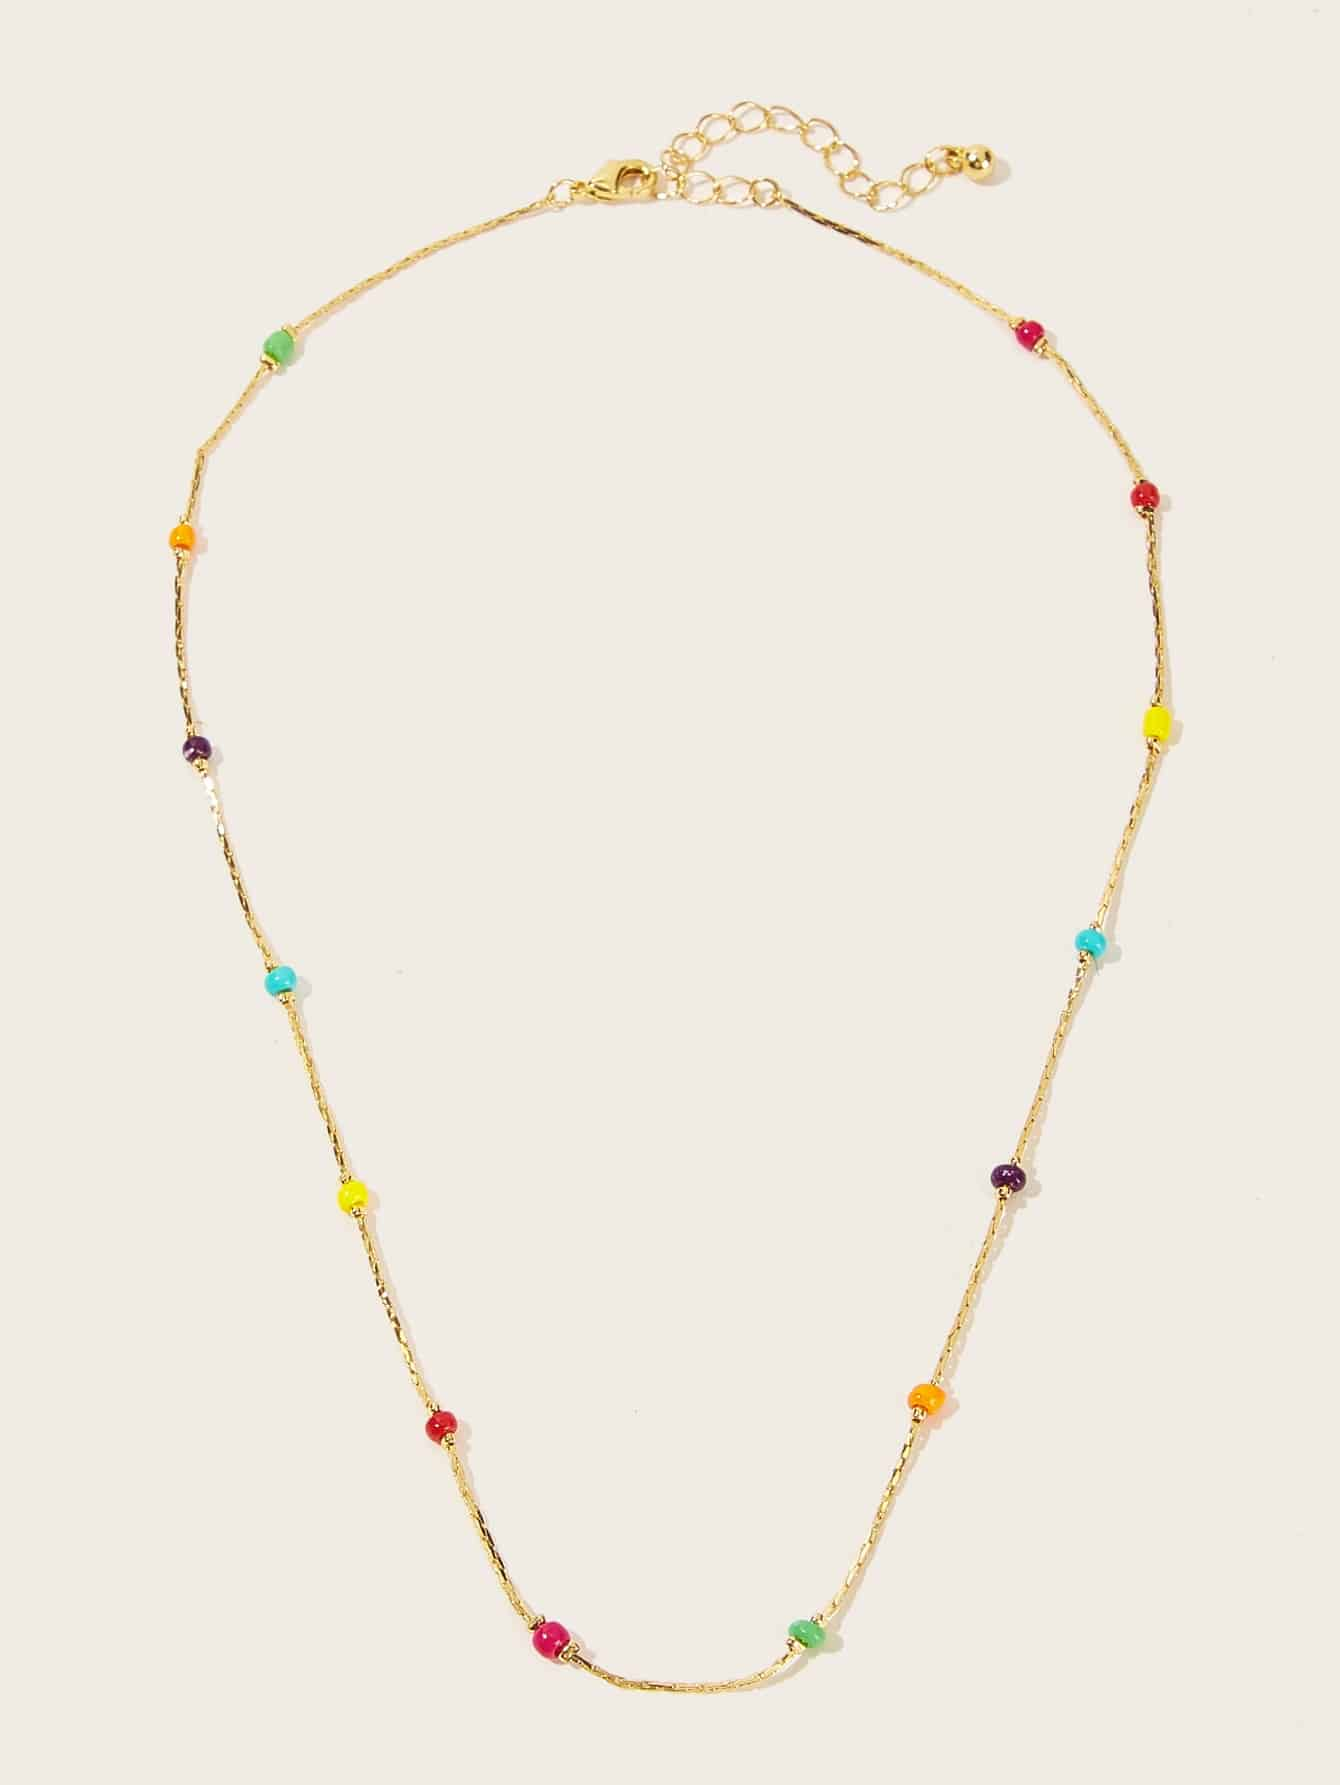 Multicolored Beads On Golden Chain 1pc Necklace